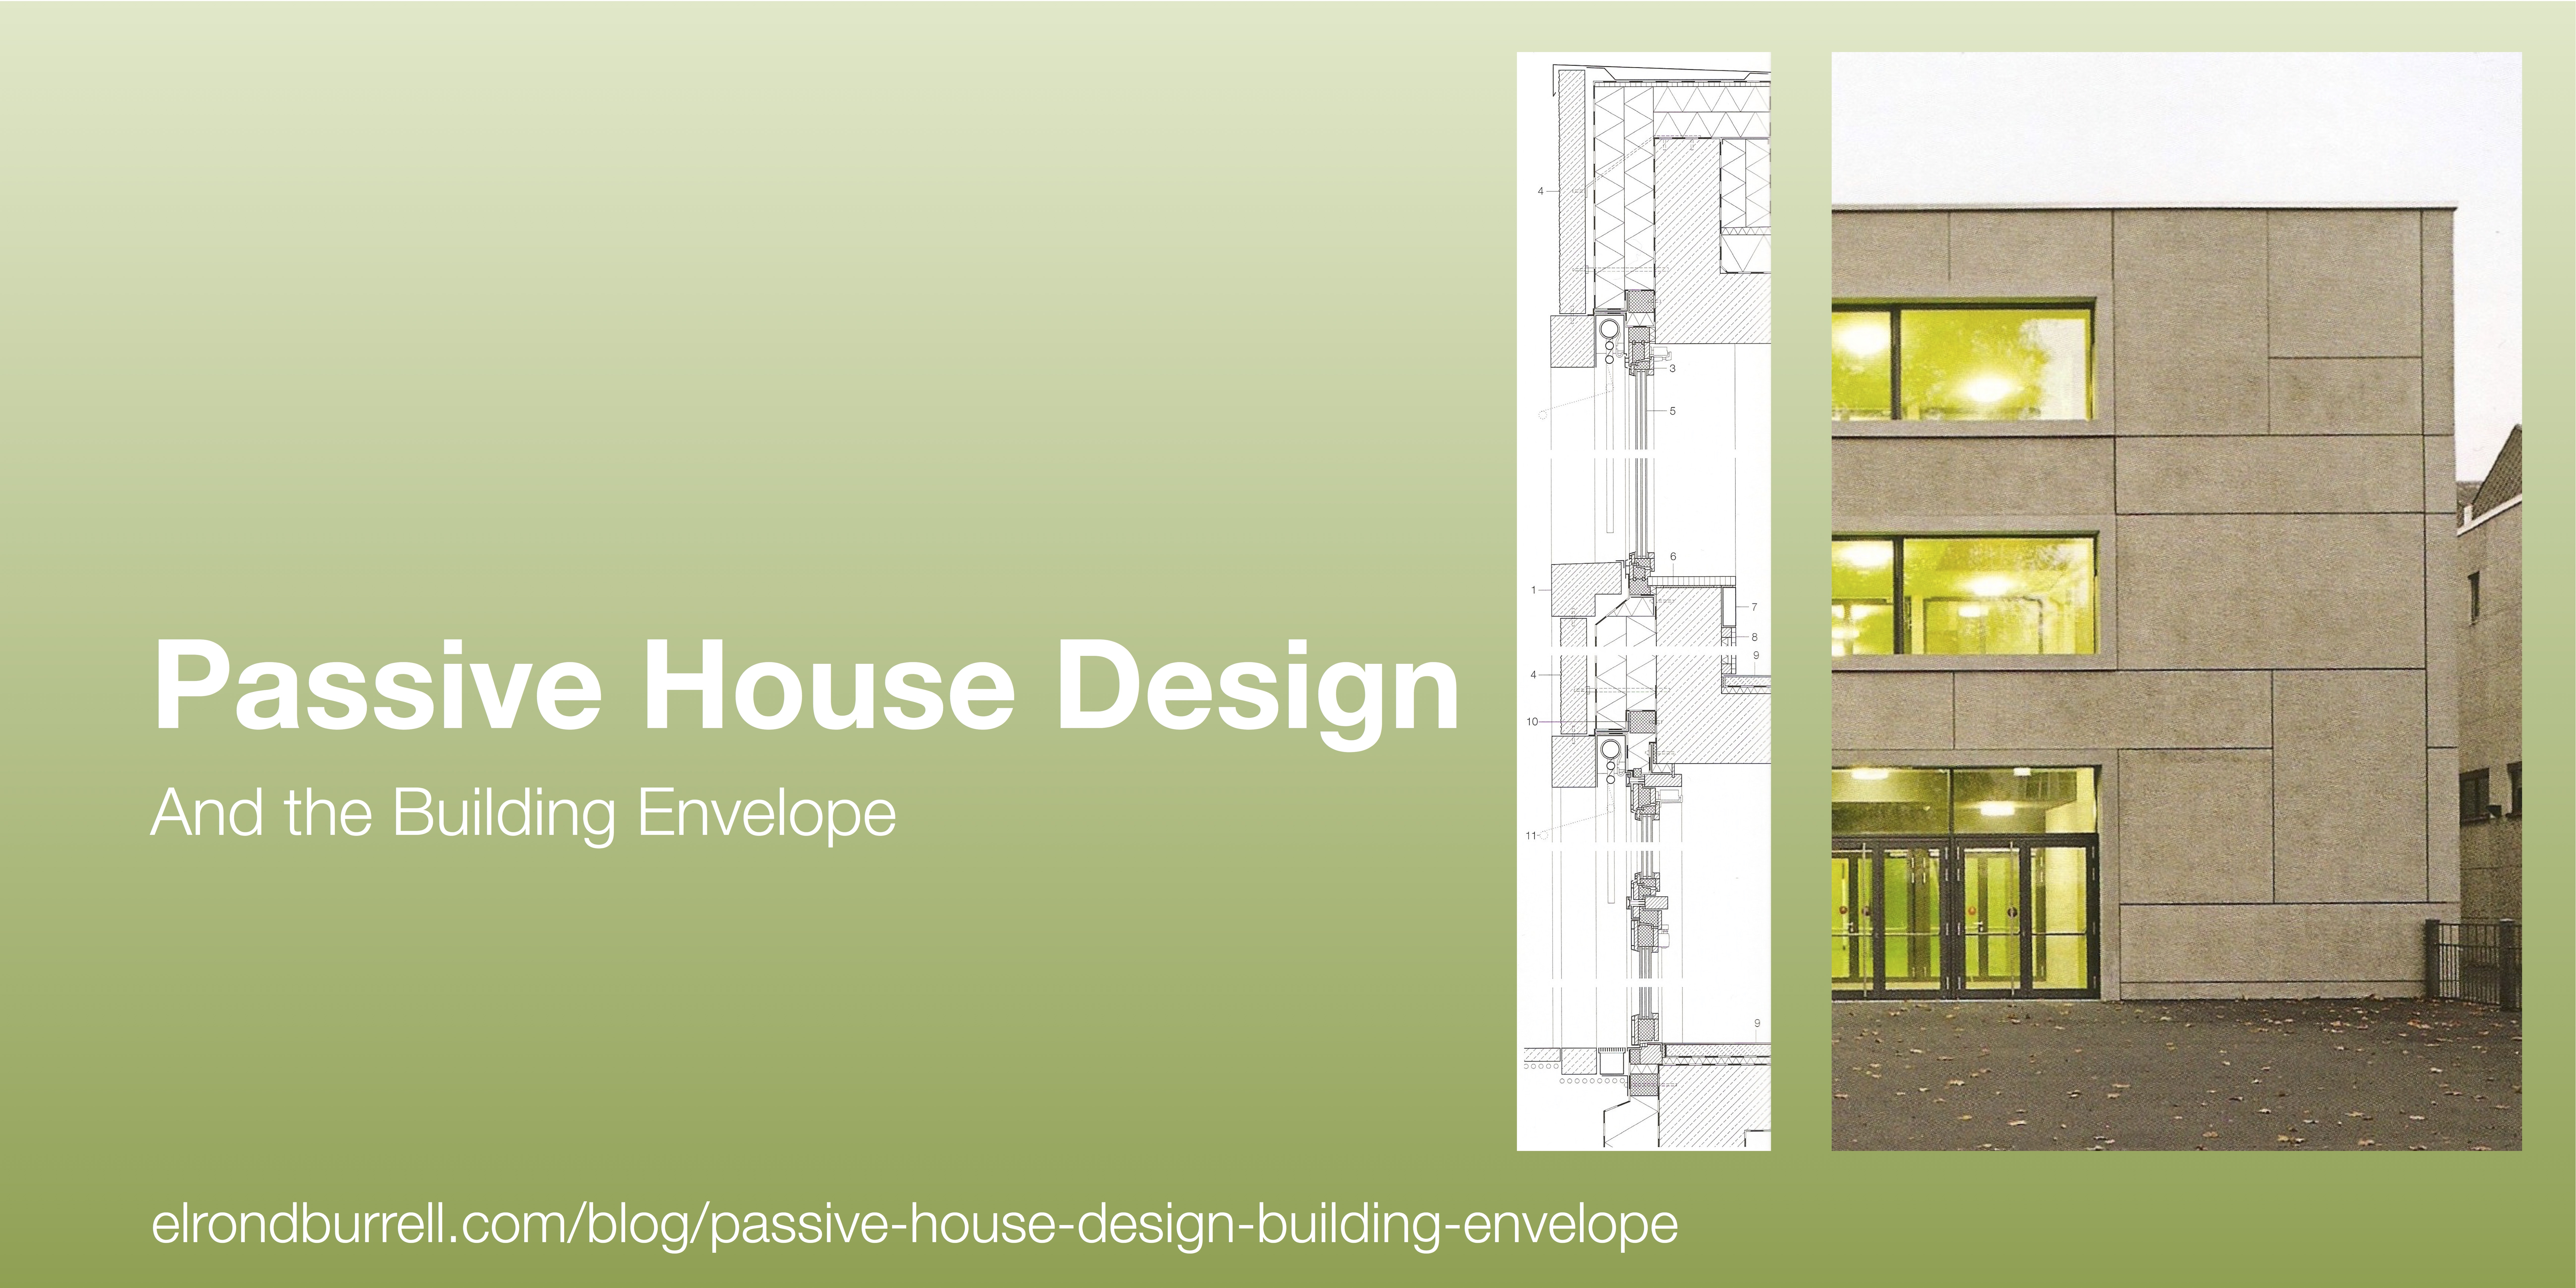 Pive House Design and the Building Envelope | PIVHAUS IN PLAIN ... on solar envelope design, innovative home design, paper house design, color house design, roof house design, container house design, food house design, echo house design, wallpaper house design, building house design, crate house design, box house design, window house design, home house design, plastic bottle house design, scale house design, napkin house design, sample house design, slope house design, polygon house design,